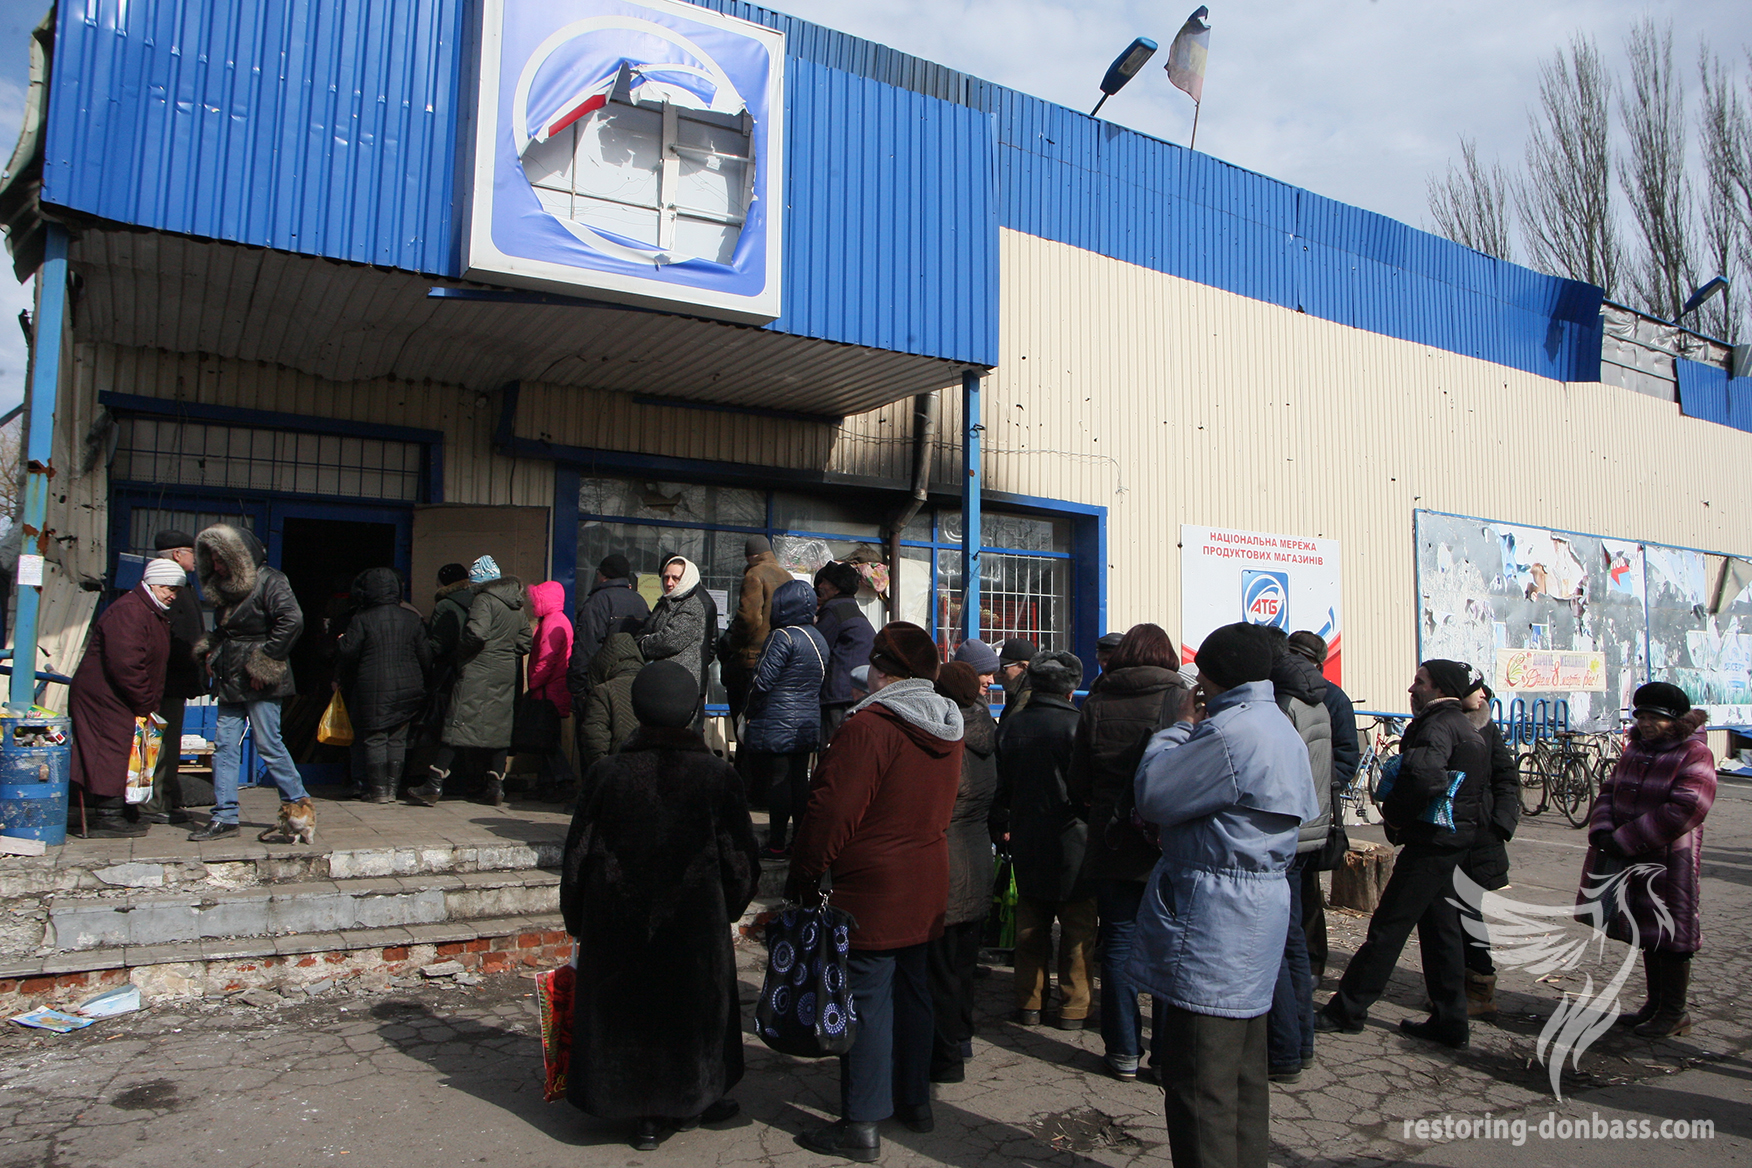 Uglegorsk residents in the queue for free bread, March 15, 2015